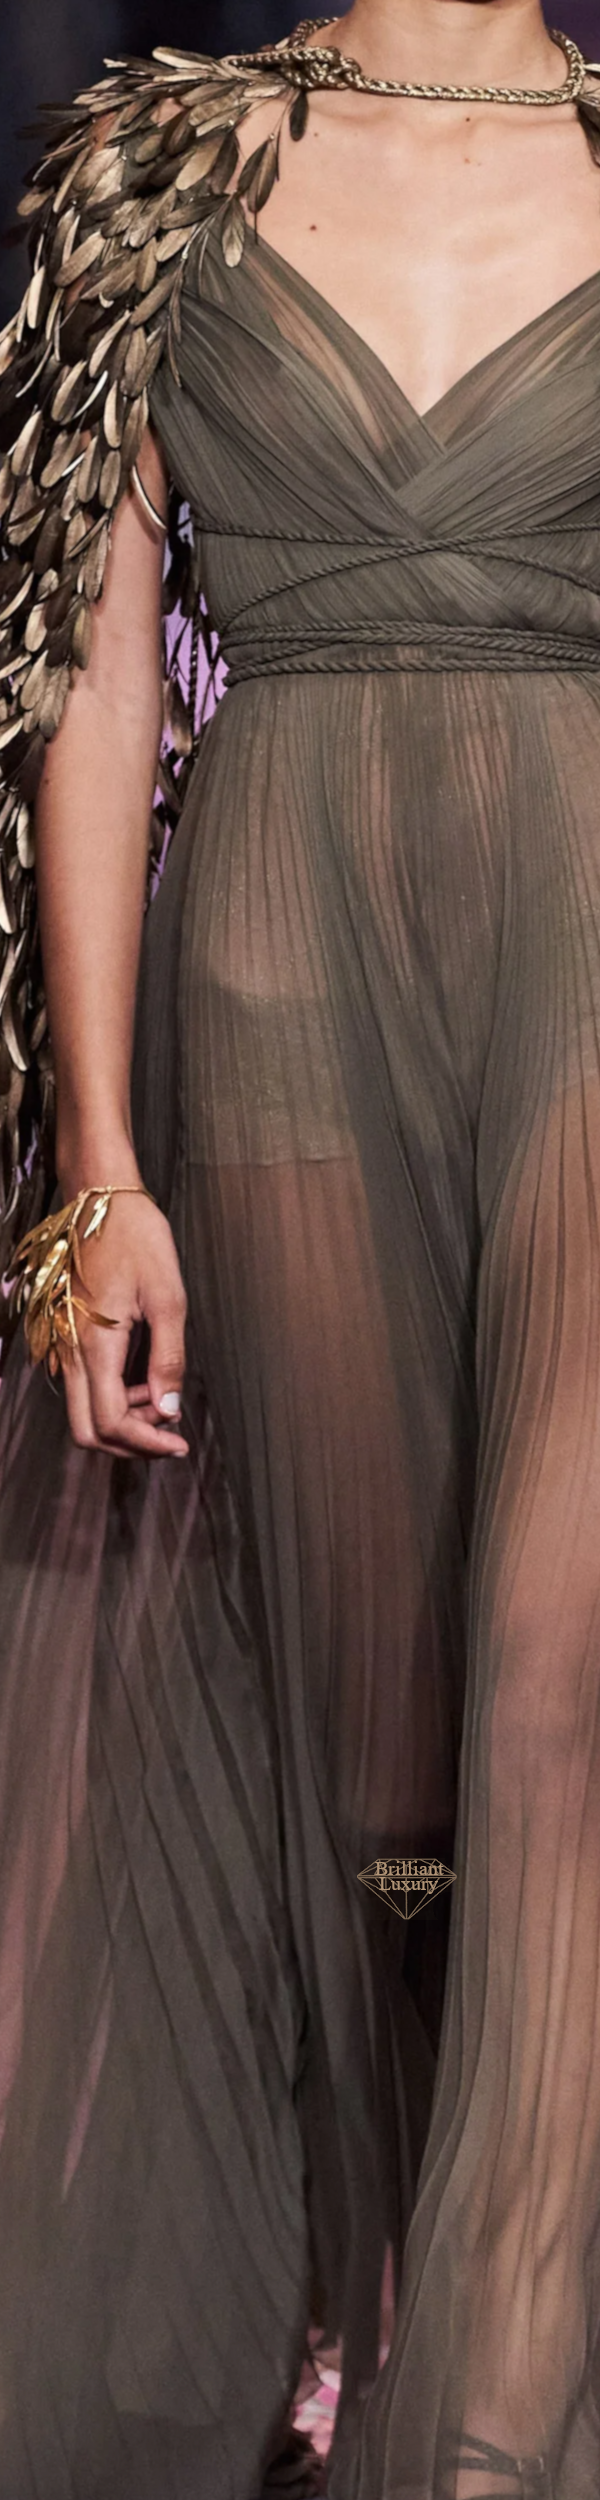 Dior Khaki and Gold Couture Gown Spring 2020 #fashion